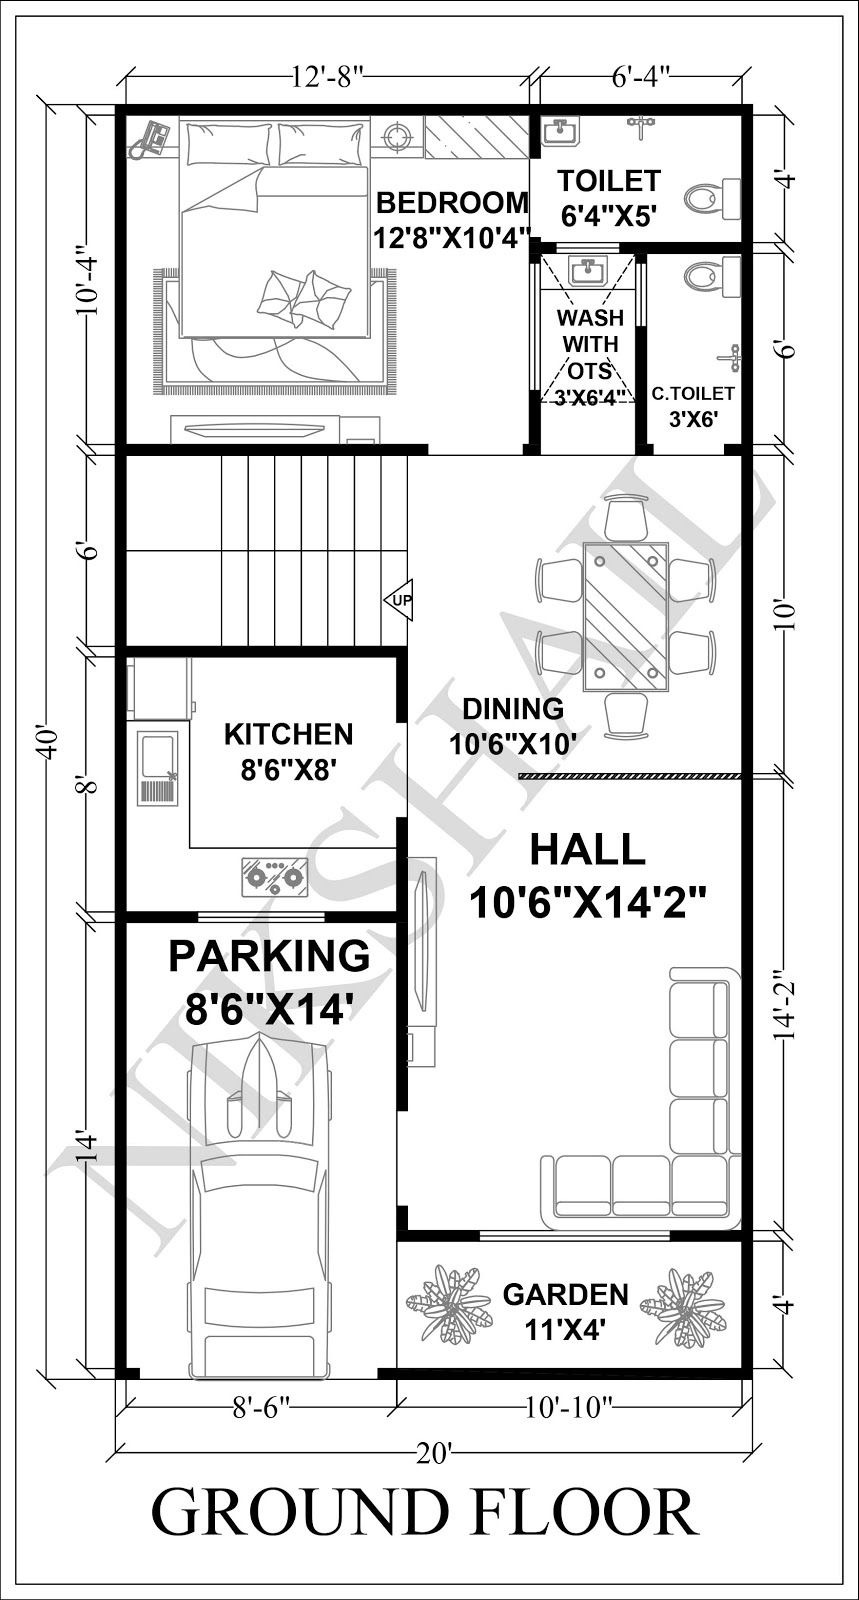 20x40 House Plan Car Parking With 3d Elevation By Nikshail 20x40 House Plans 20x30 House Plans Narrow House Plans